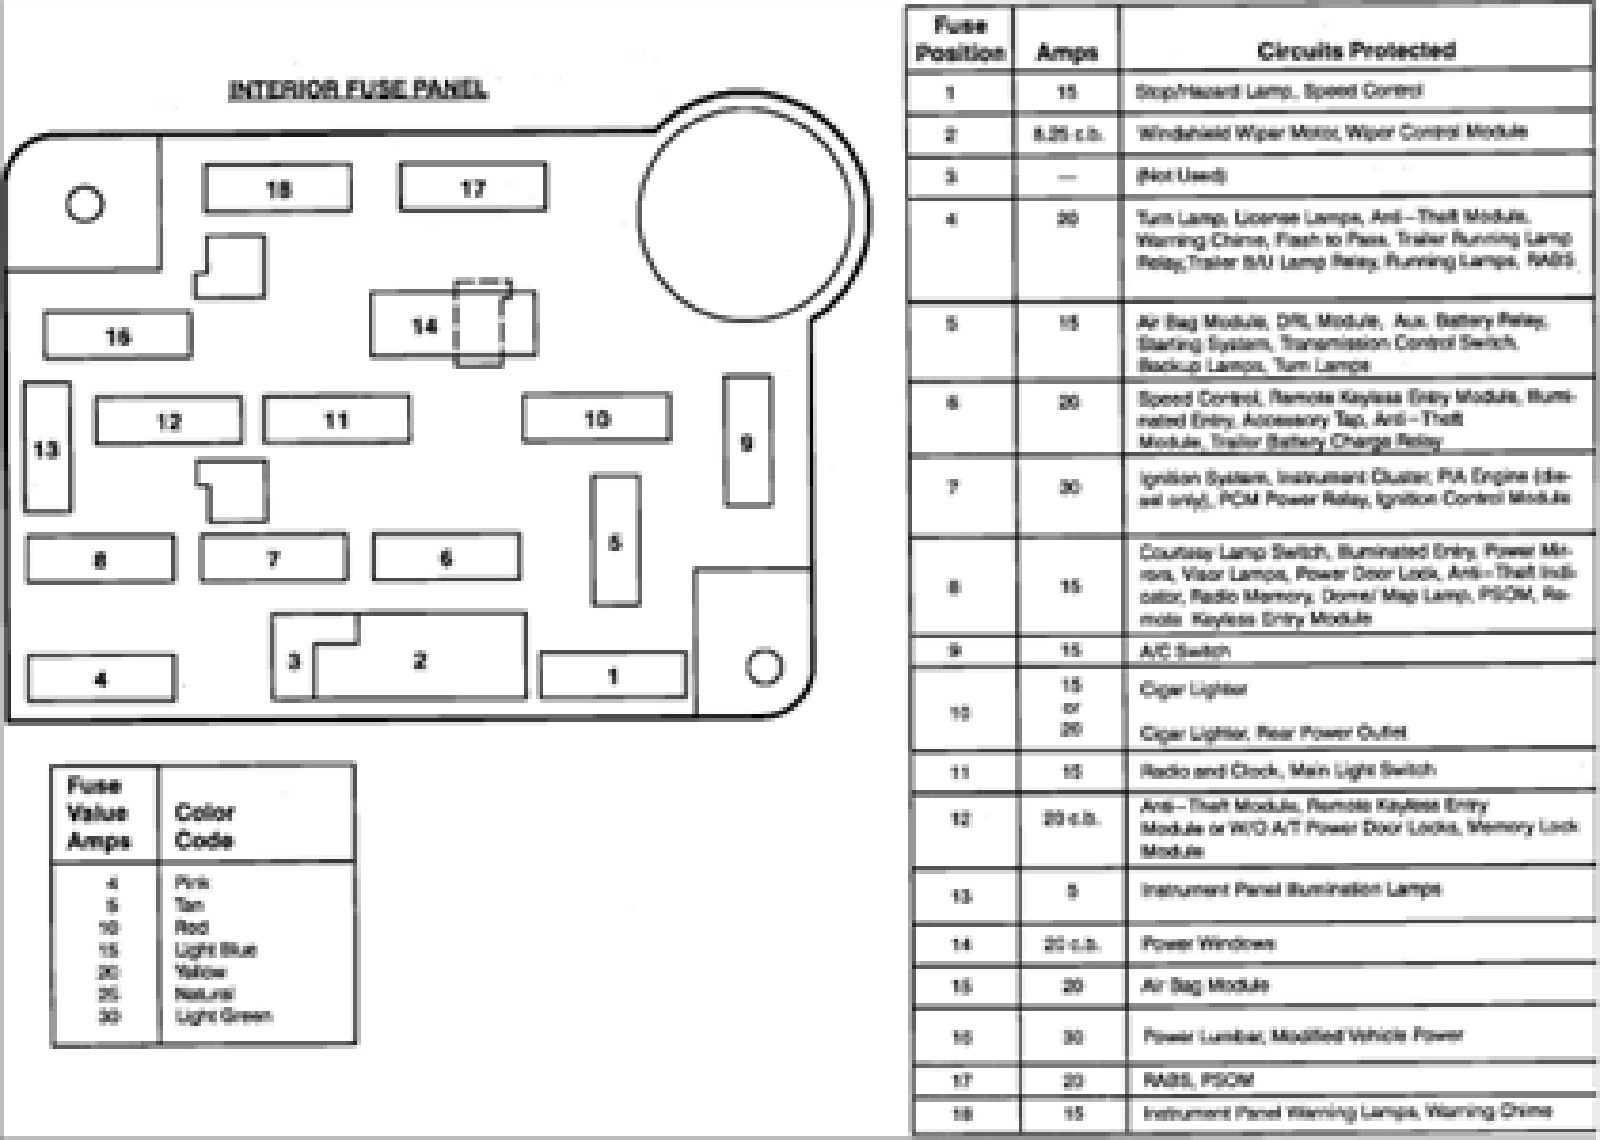 95 ford ranger fuse diagram honda spree wiring 93 e150 box 2004